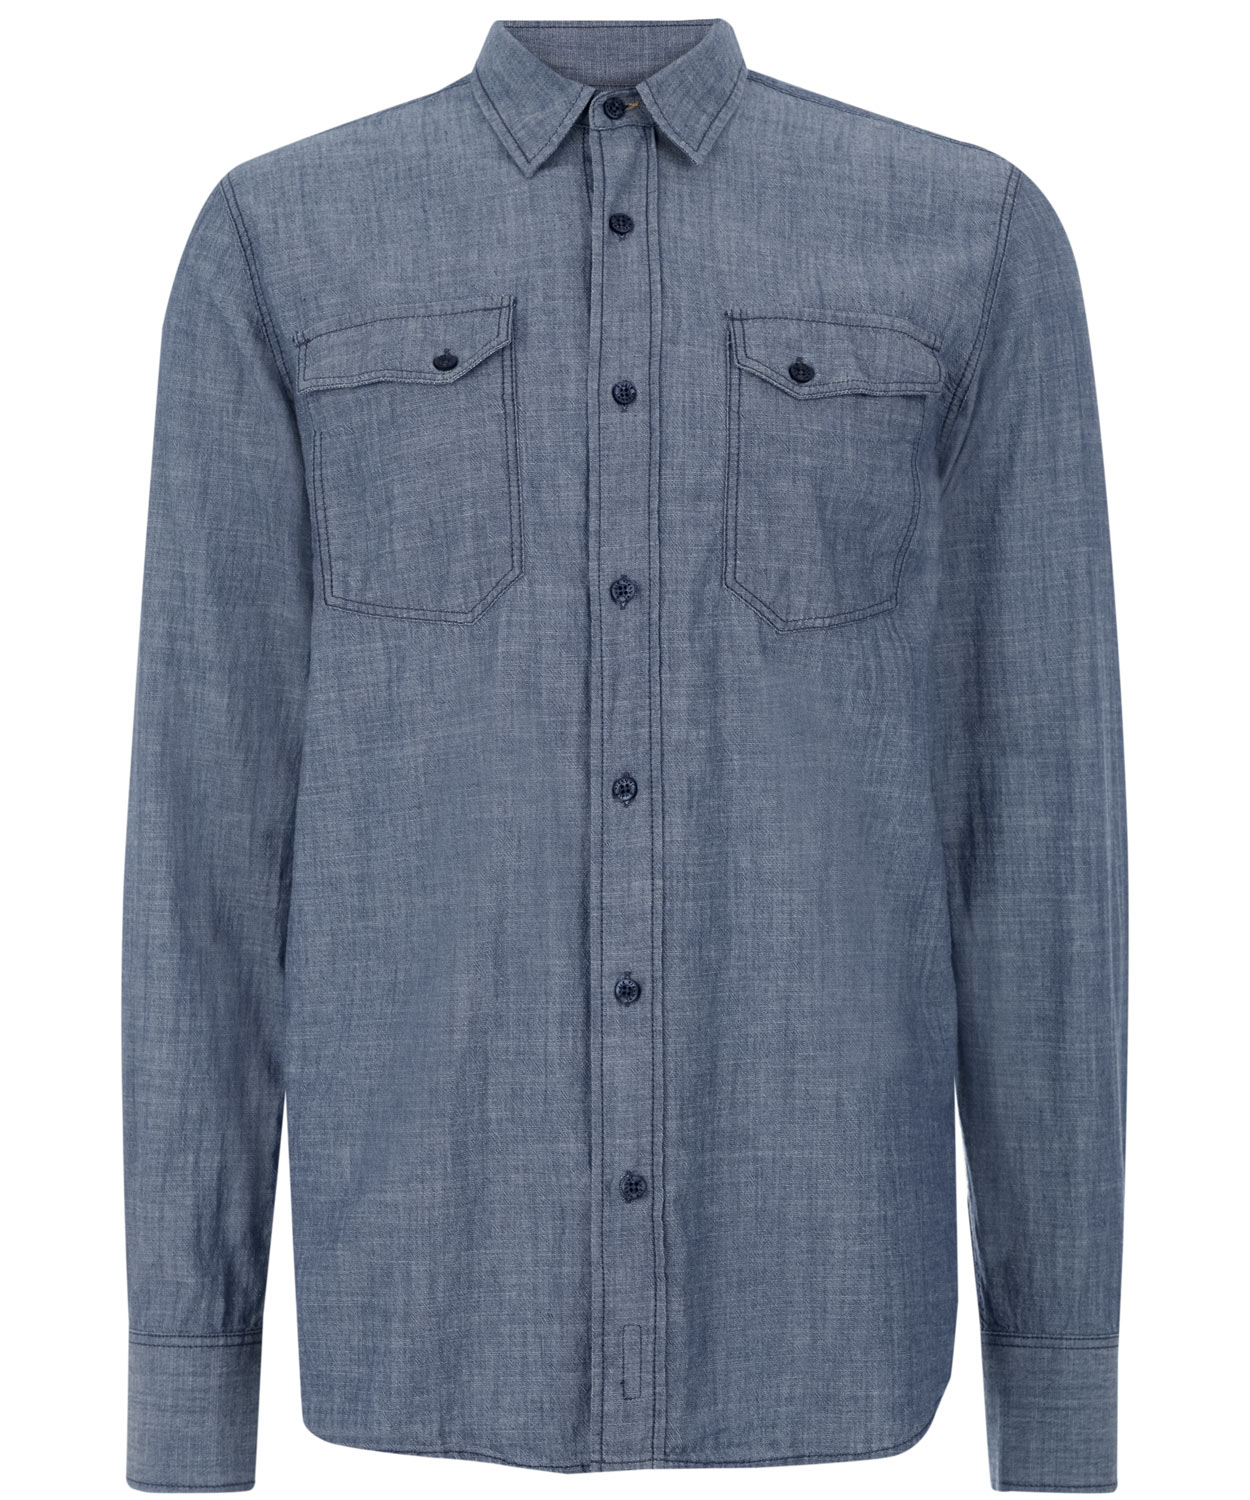 Nudie jeans indigo gunnar organic chambray shirt in blue for Chambray jeans